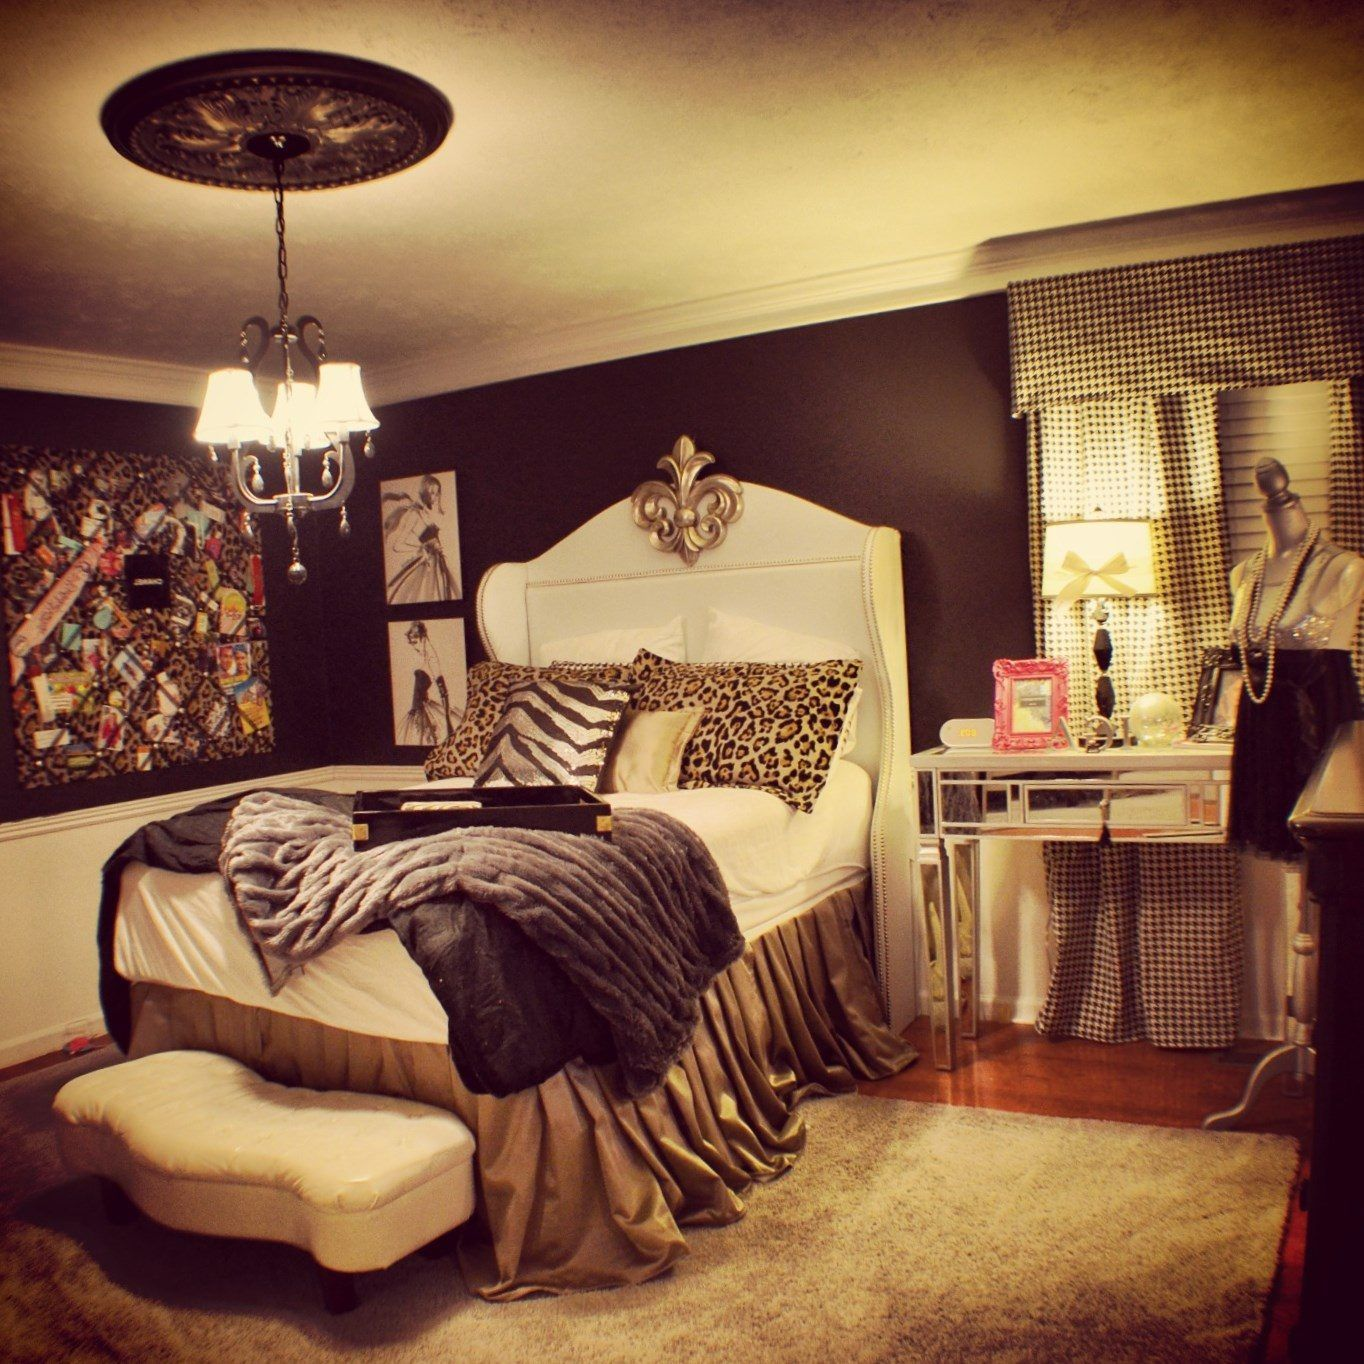 Cheetah print bedroom decor - https://bedroom-design-2017.info/style ...